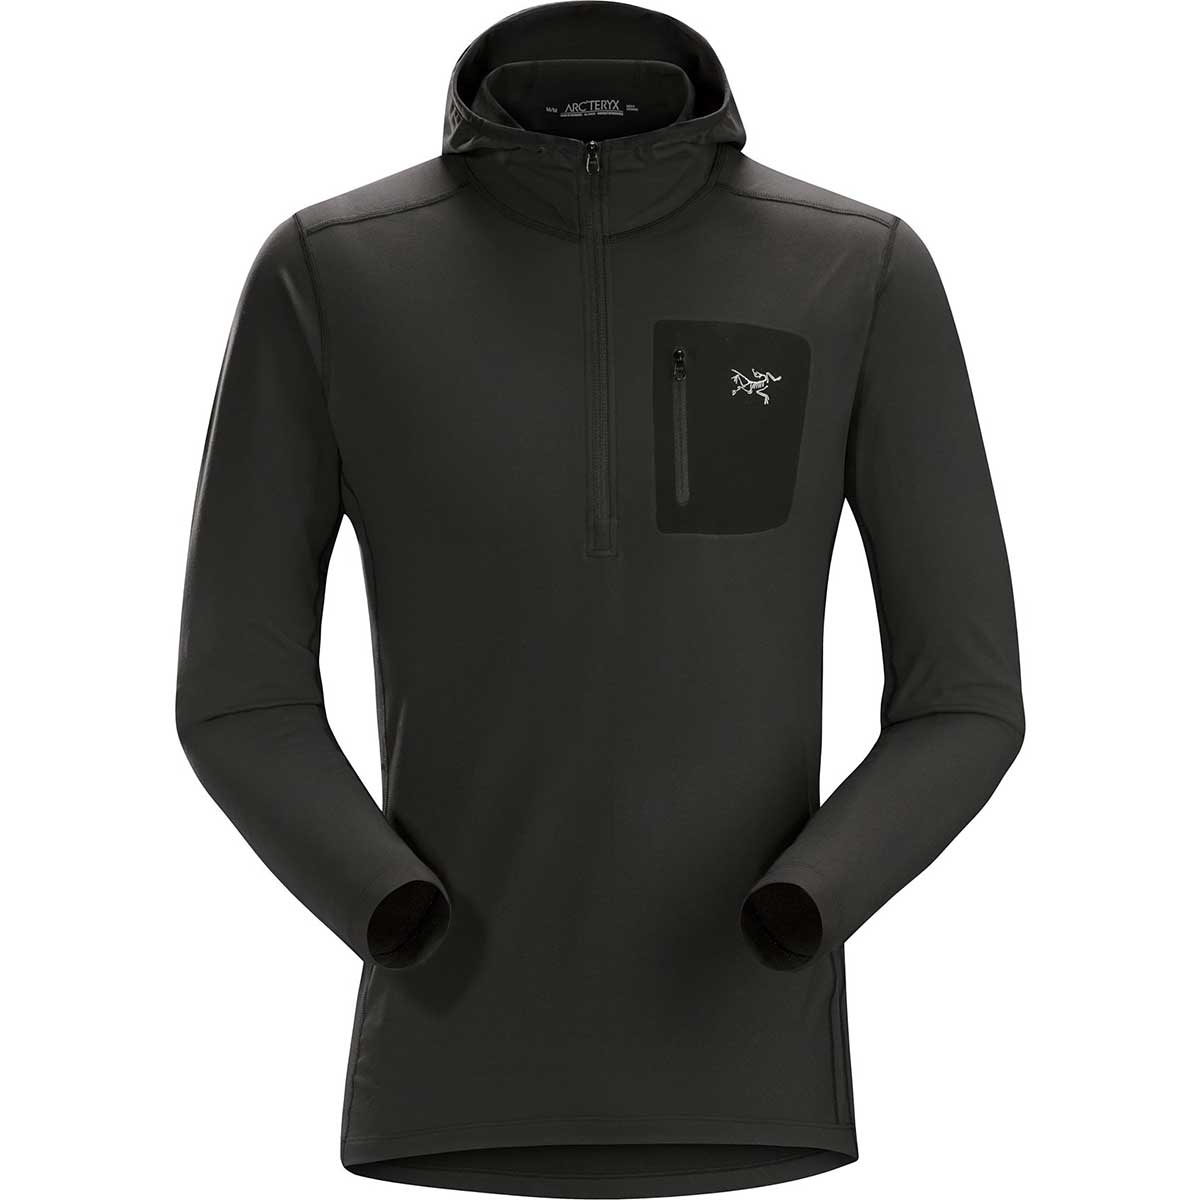 Arcteryx men's Rho Lt Hooded Zip Neck Top in Black front view